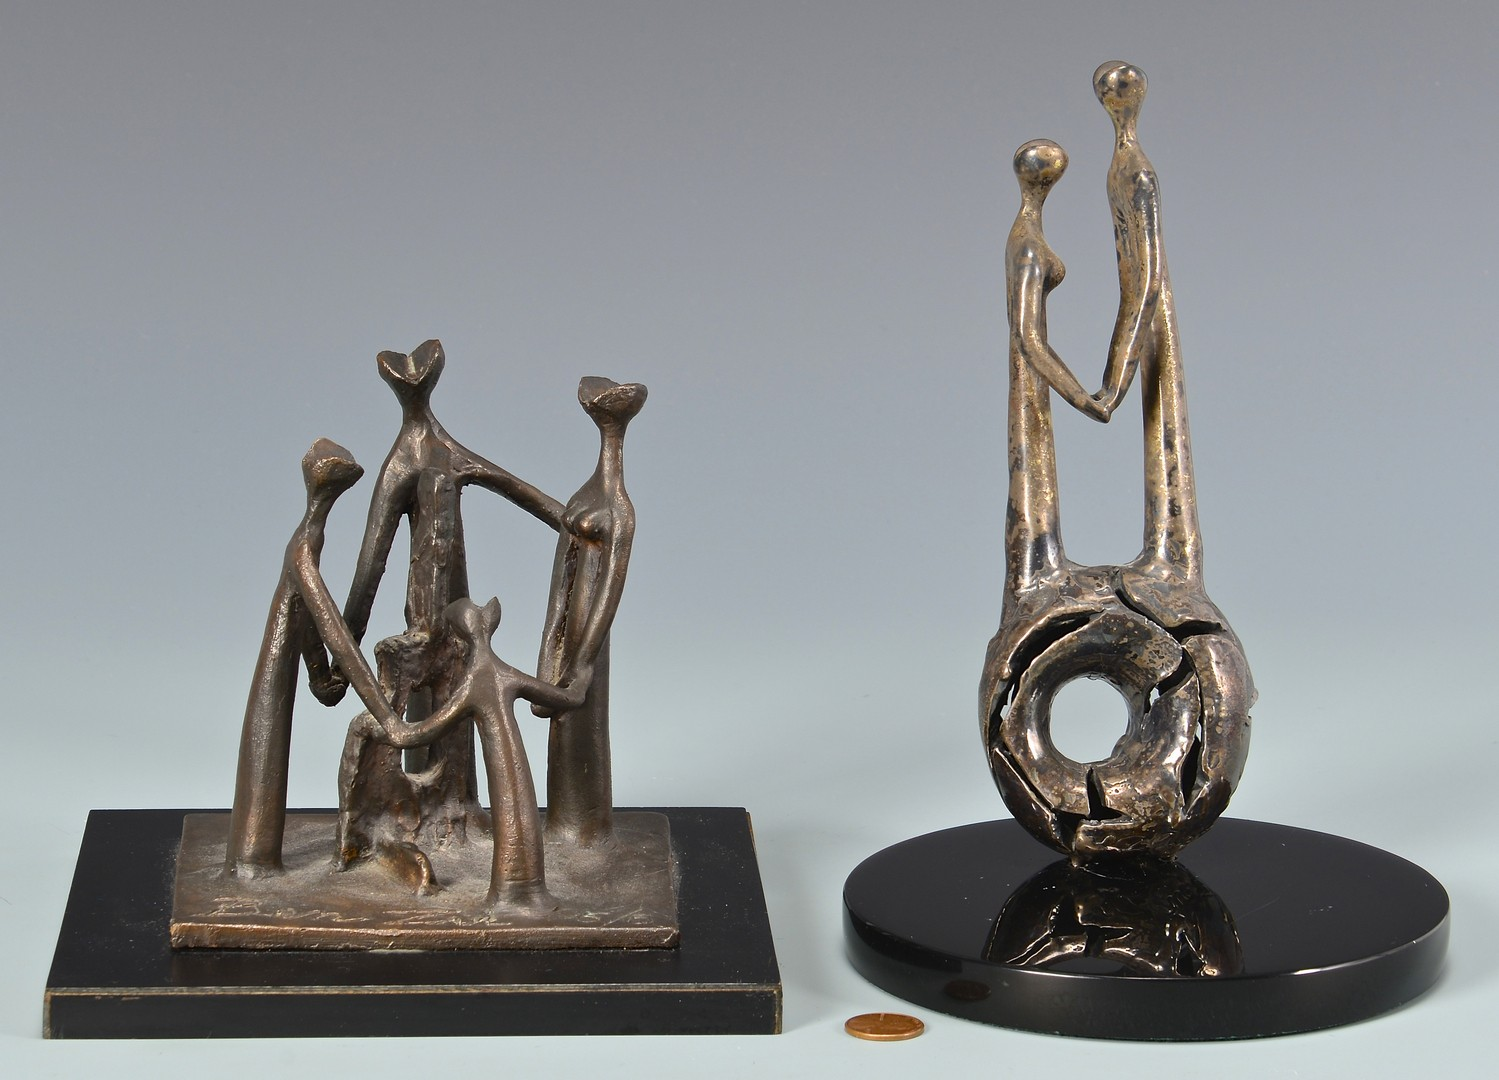 Lot 451: Gedalia Ben Zvi, 2 small sculptures